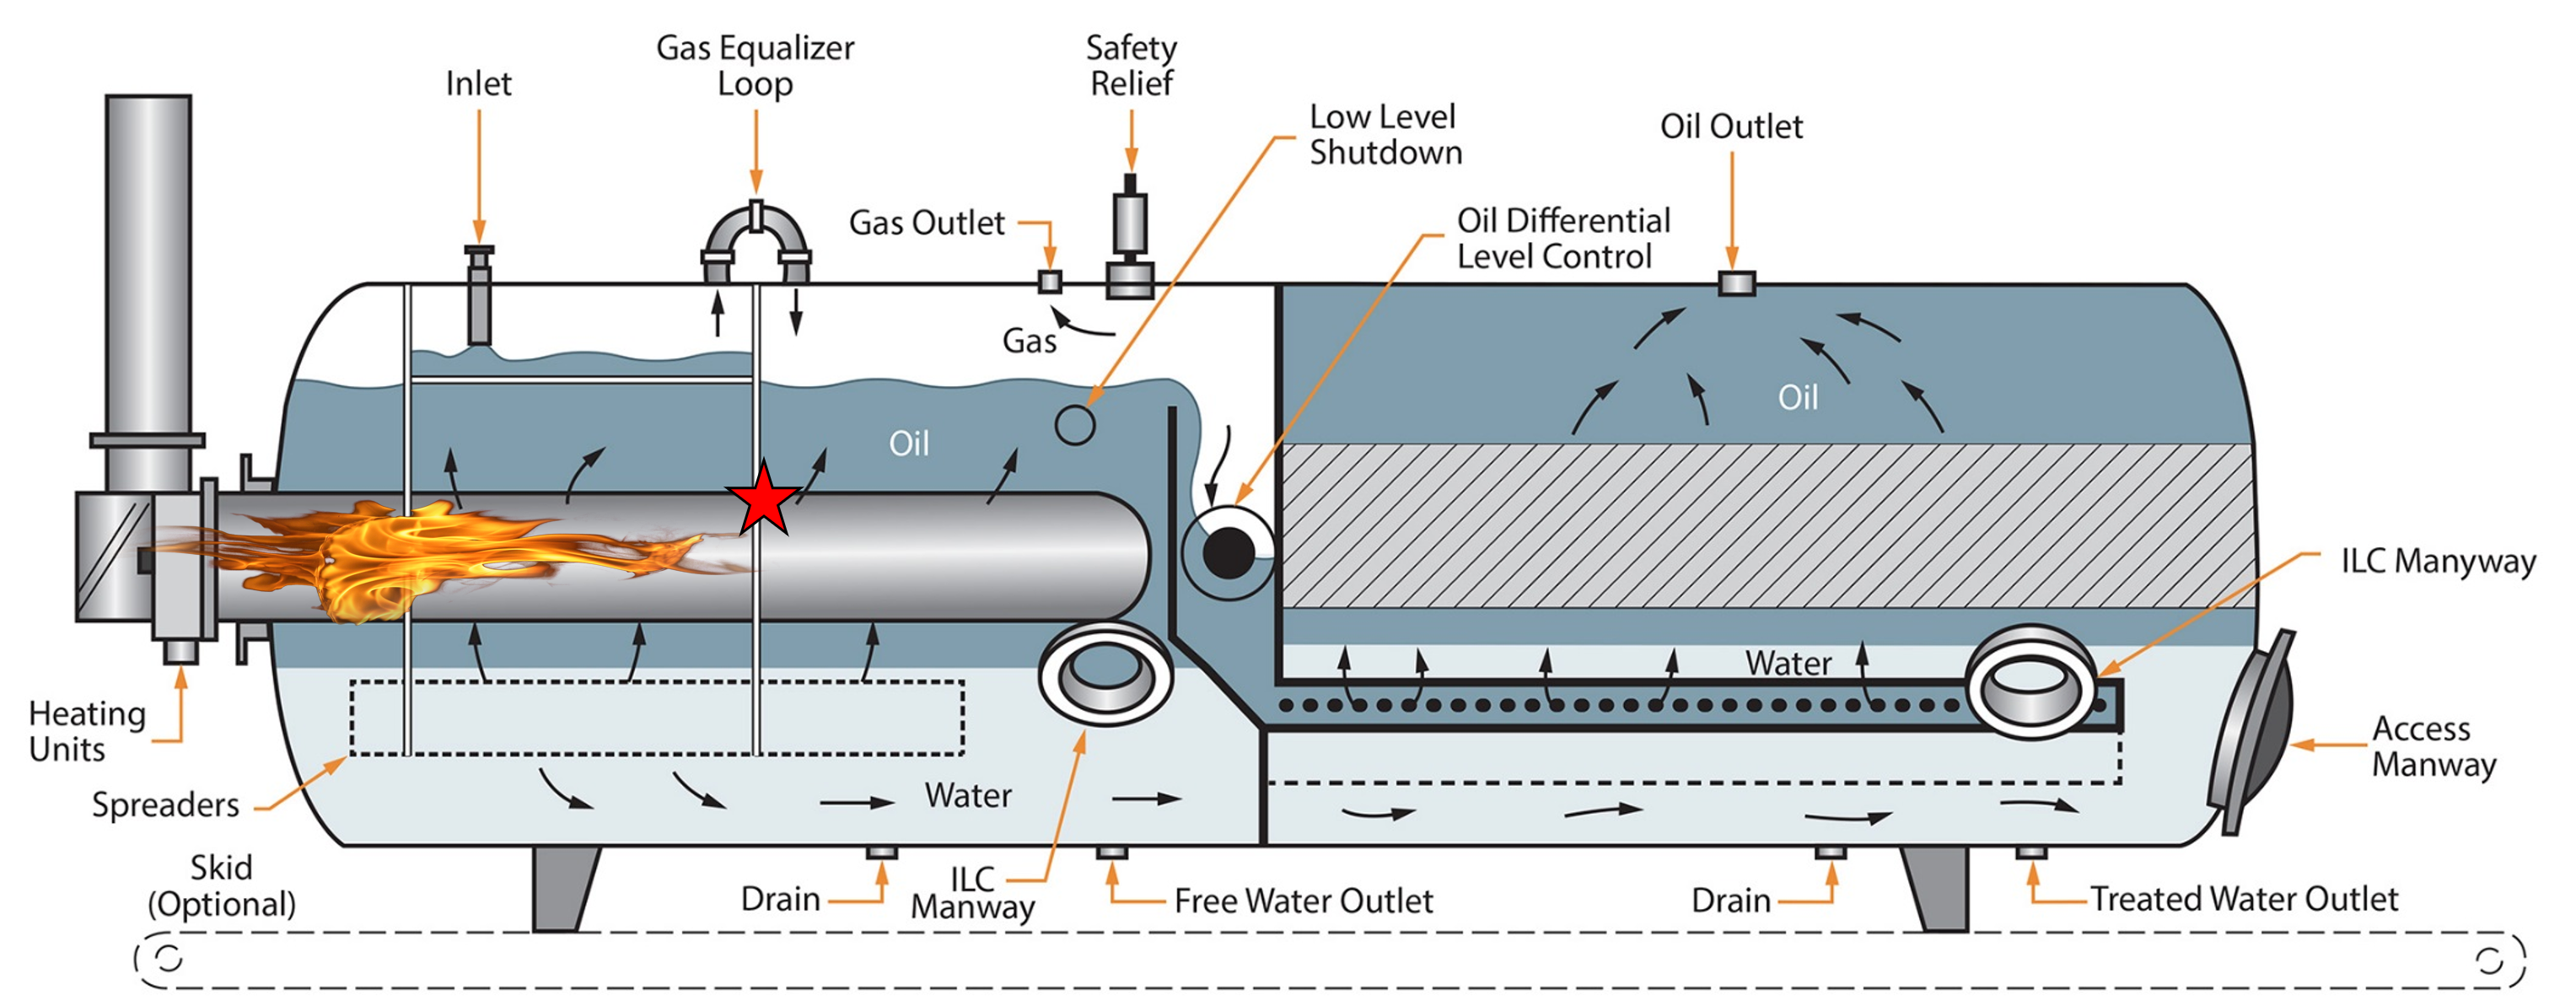 Design and Operation of Unconventional Surface Facilities: Process Safety  Tips | Campbell Tip of the Month